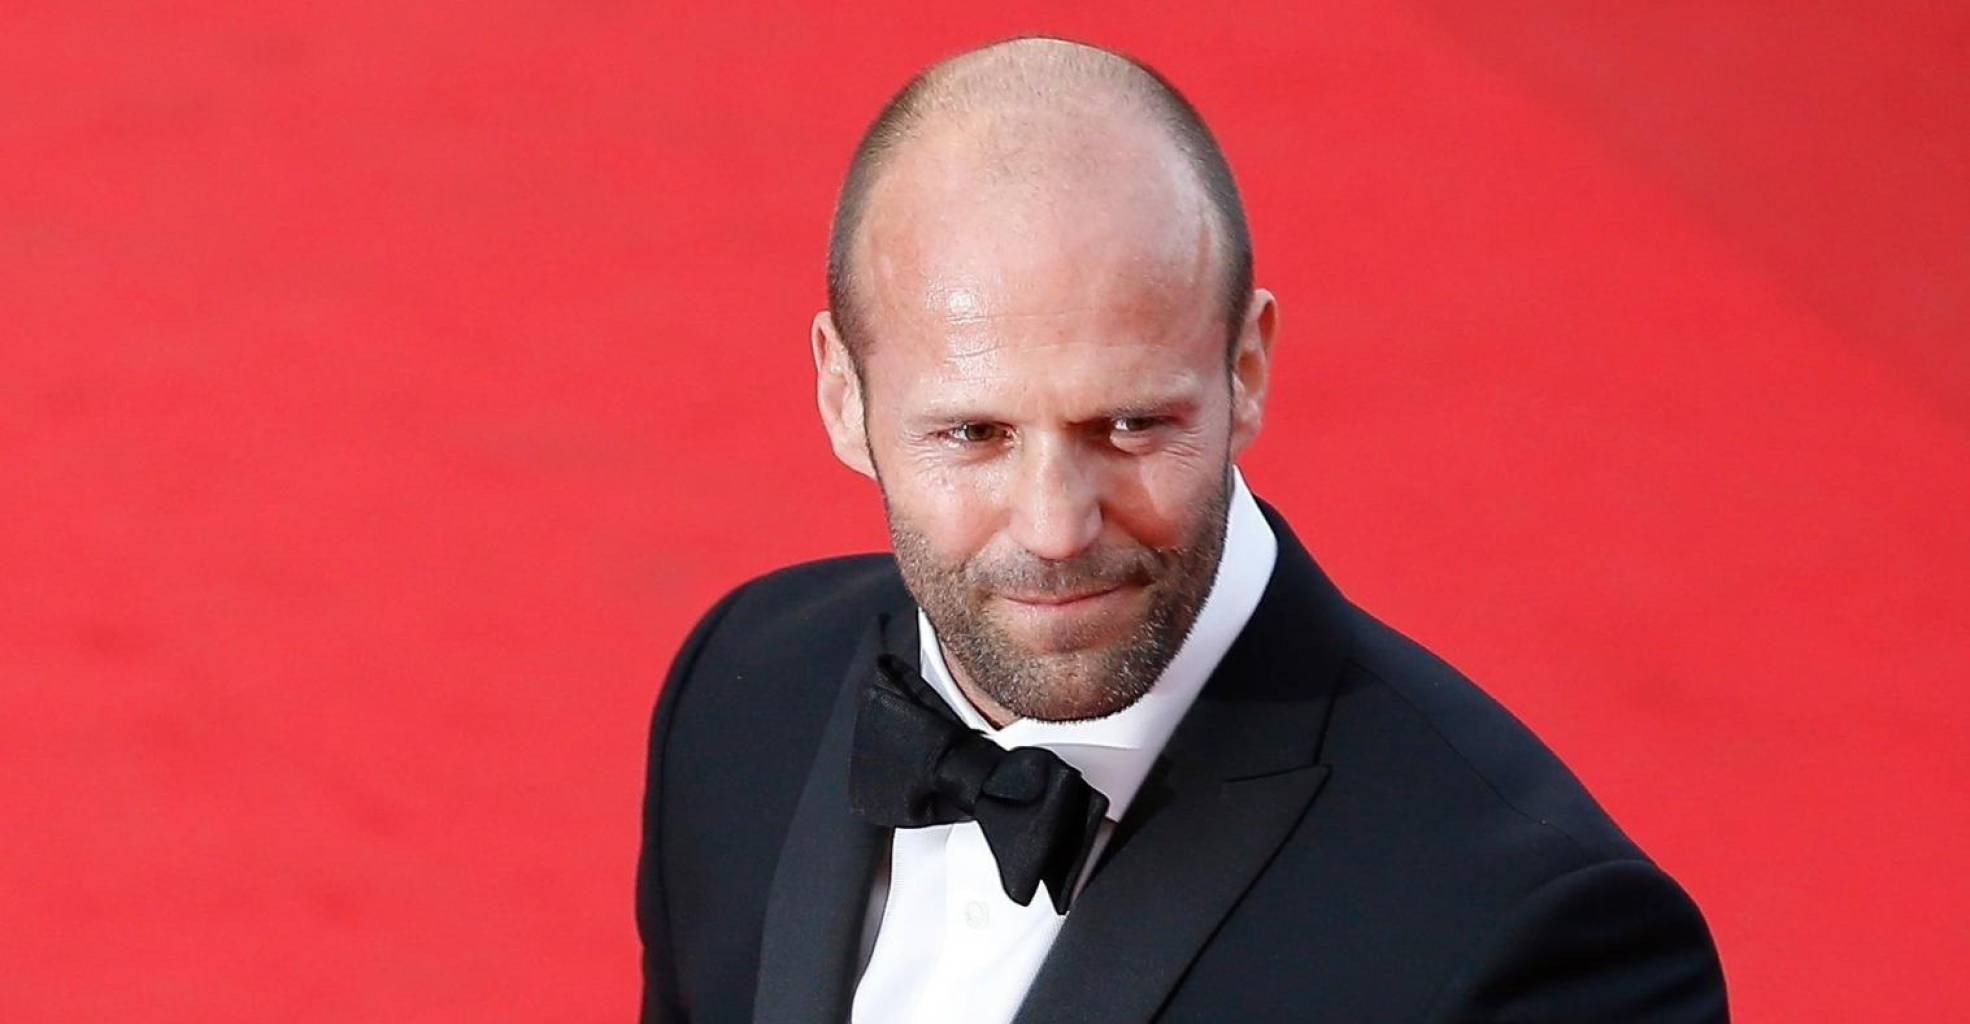 Jason Statham life and career of a tough movie guy